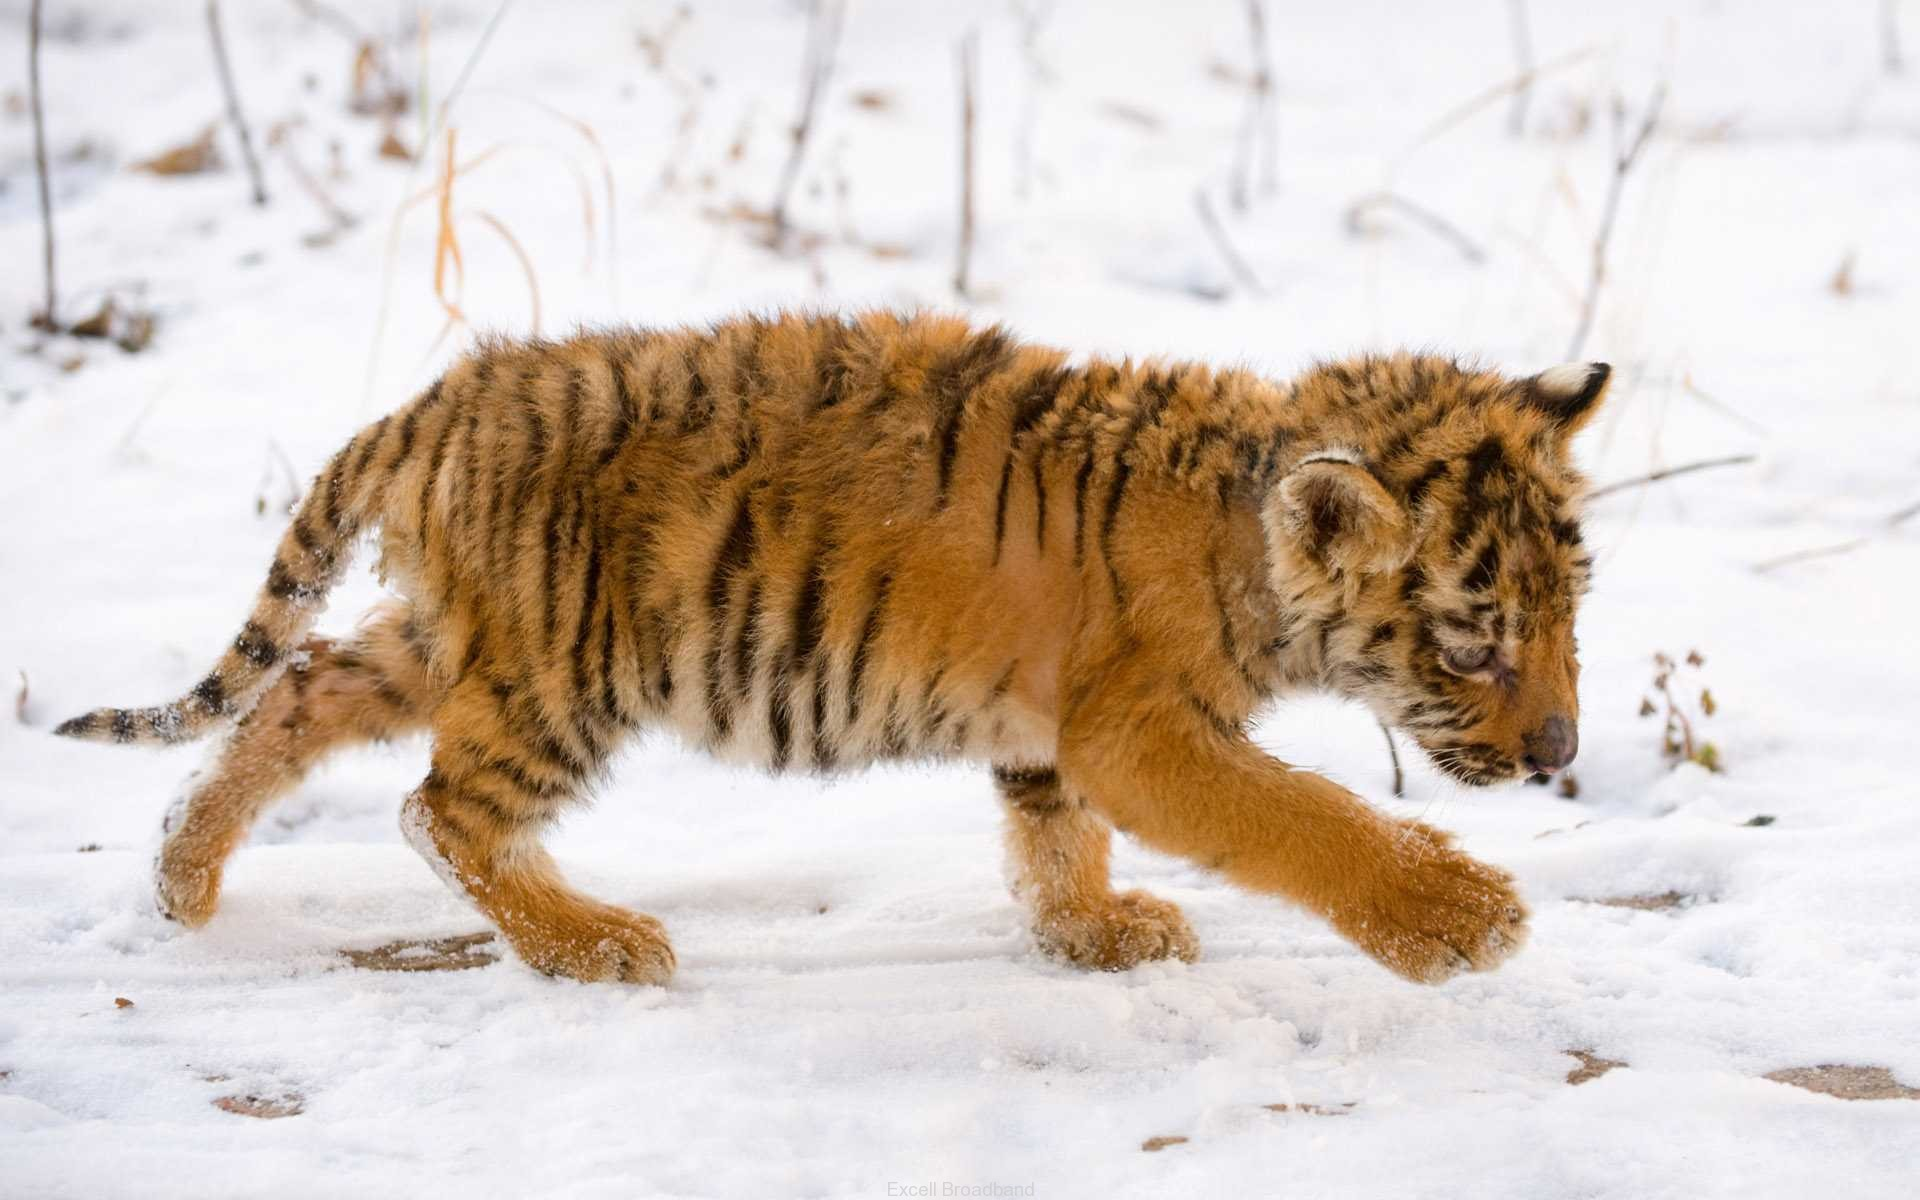 Snow Tiger Cub 381.26 Kb